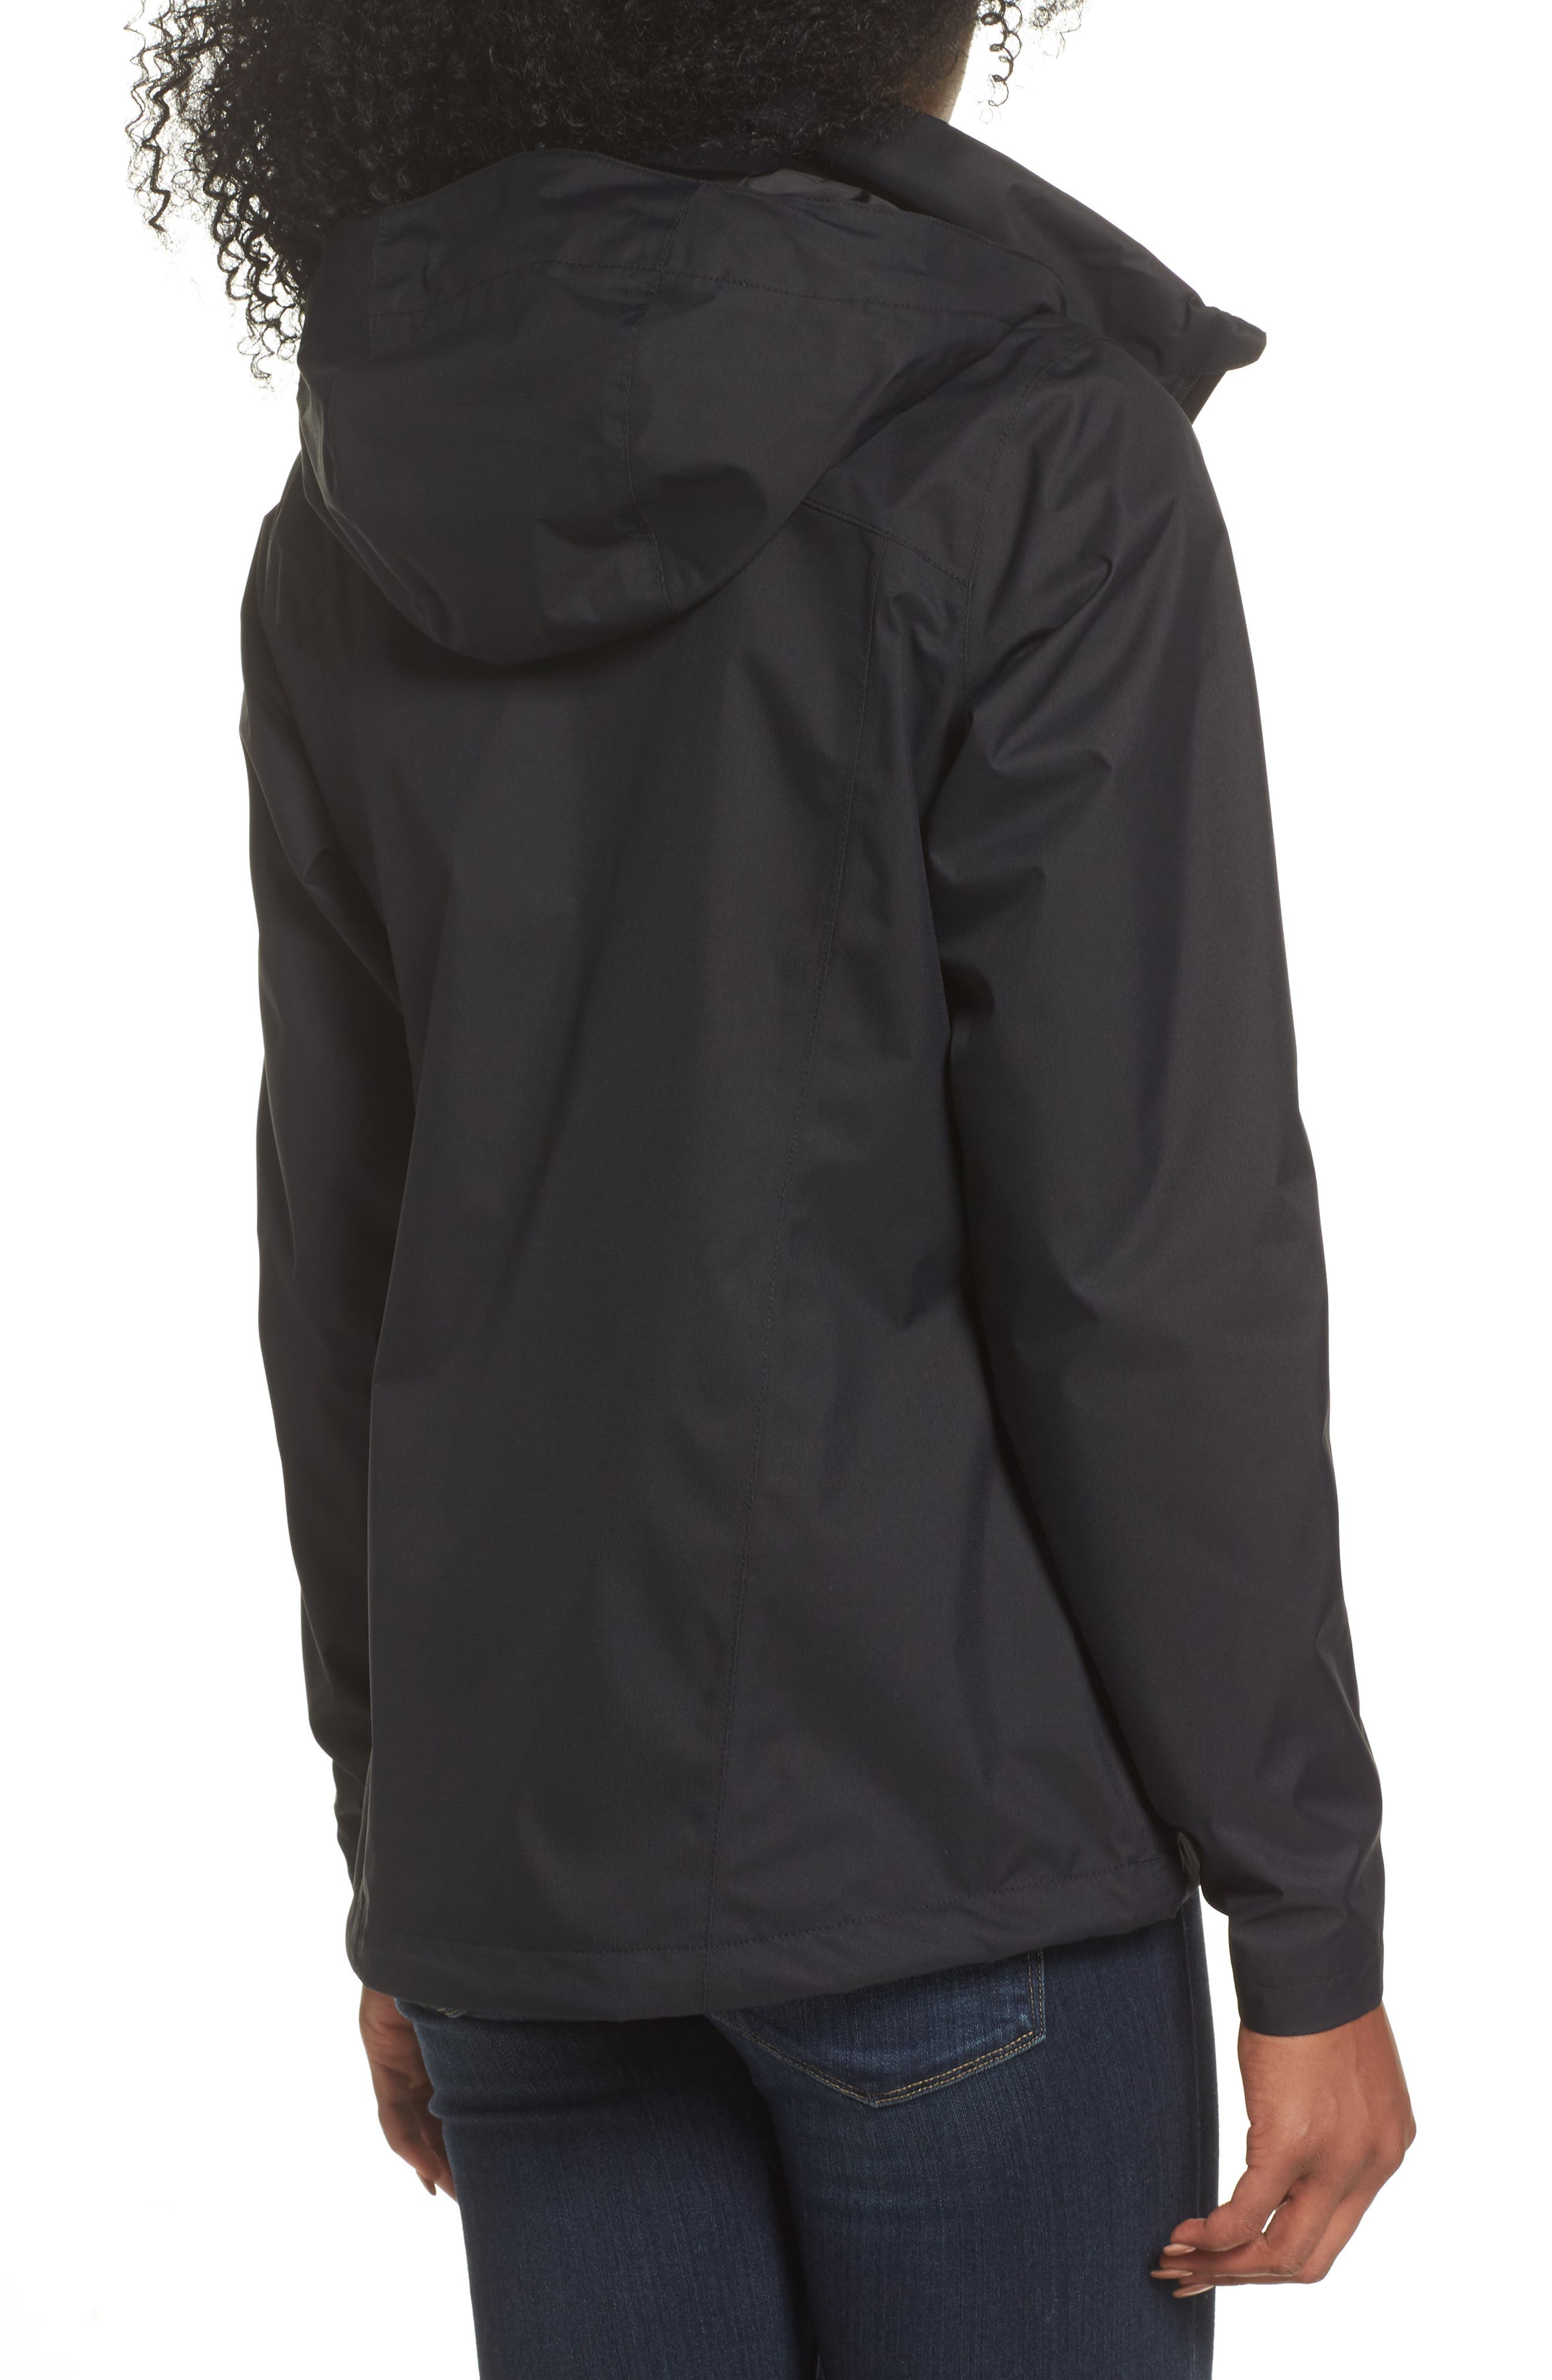 THE NORTH FACE, Resolve Plus Waterproof Jacket, Alternate thumbnail 2, color, TNF BLACK